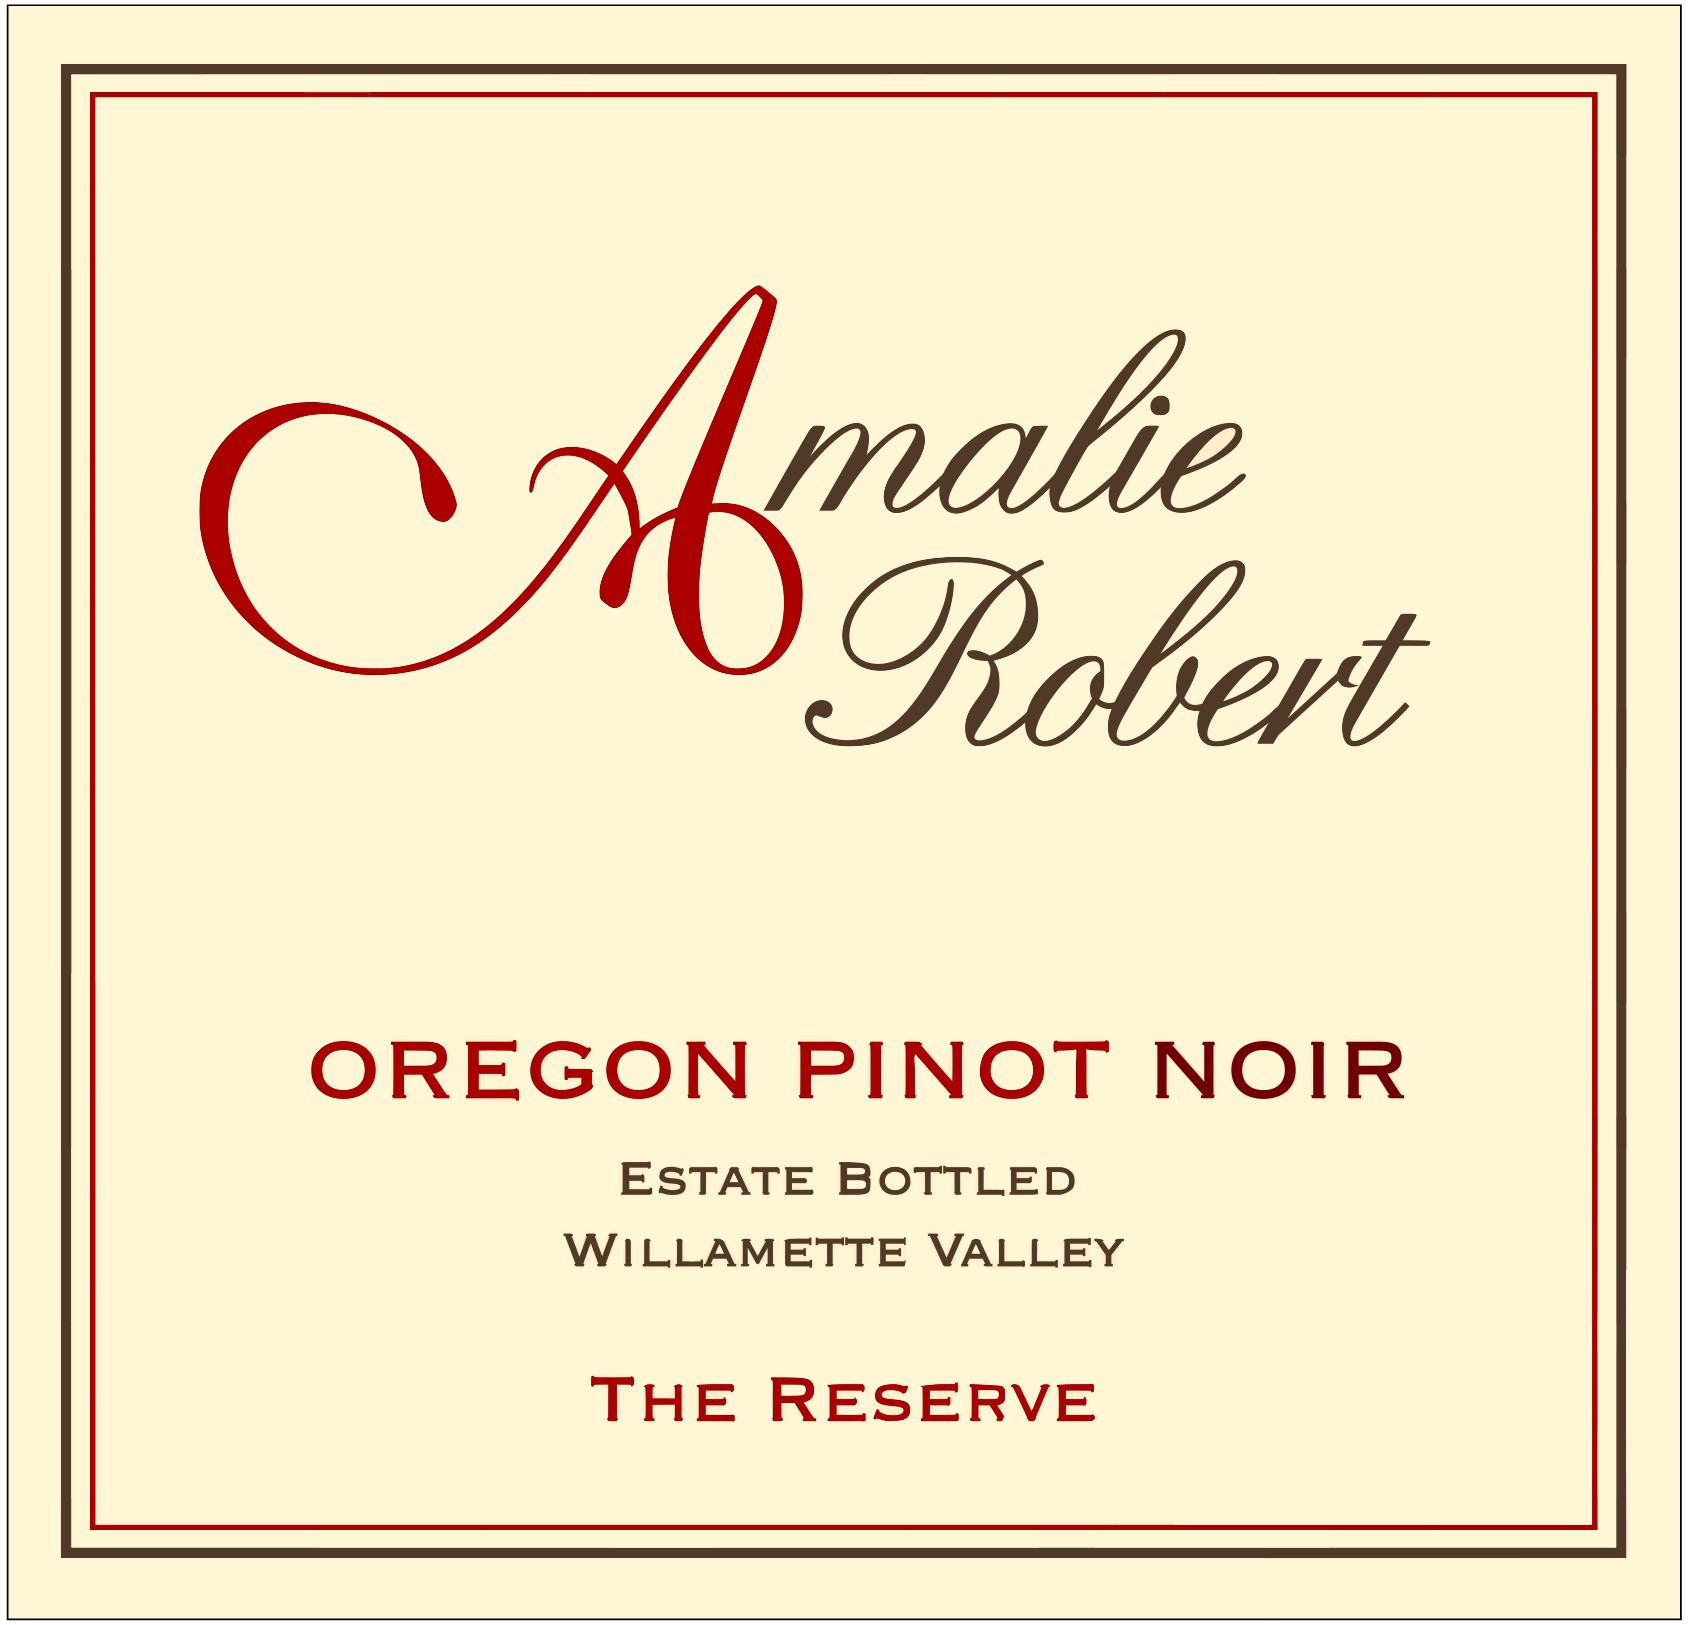 2008 The Reserve Pinot Noir